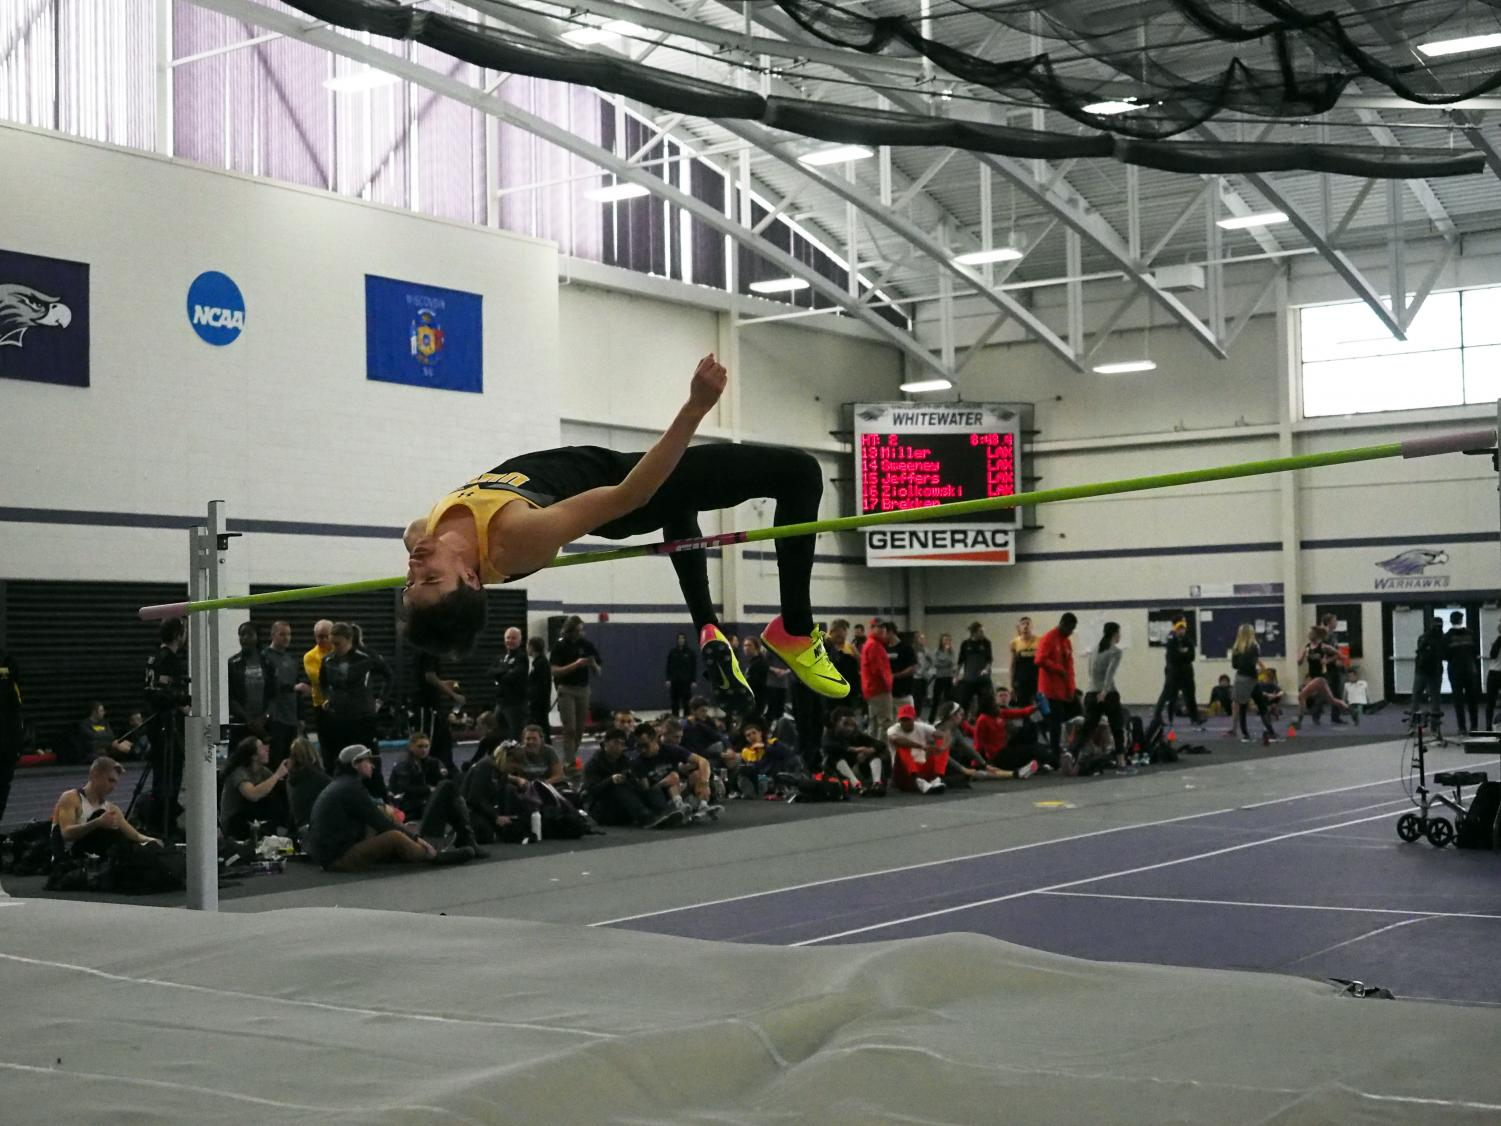 UWO junior Jake Skoien jumps over the current height to beat at Saturday's meet in Whitewater. Skoien, who is a sprinter for the Titans, jumped to a height of 1.95 meters on the day, which was the ninth-highest seed but did not jump in the finals.